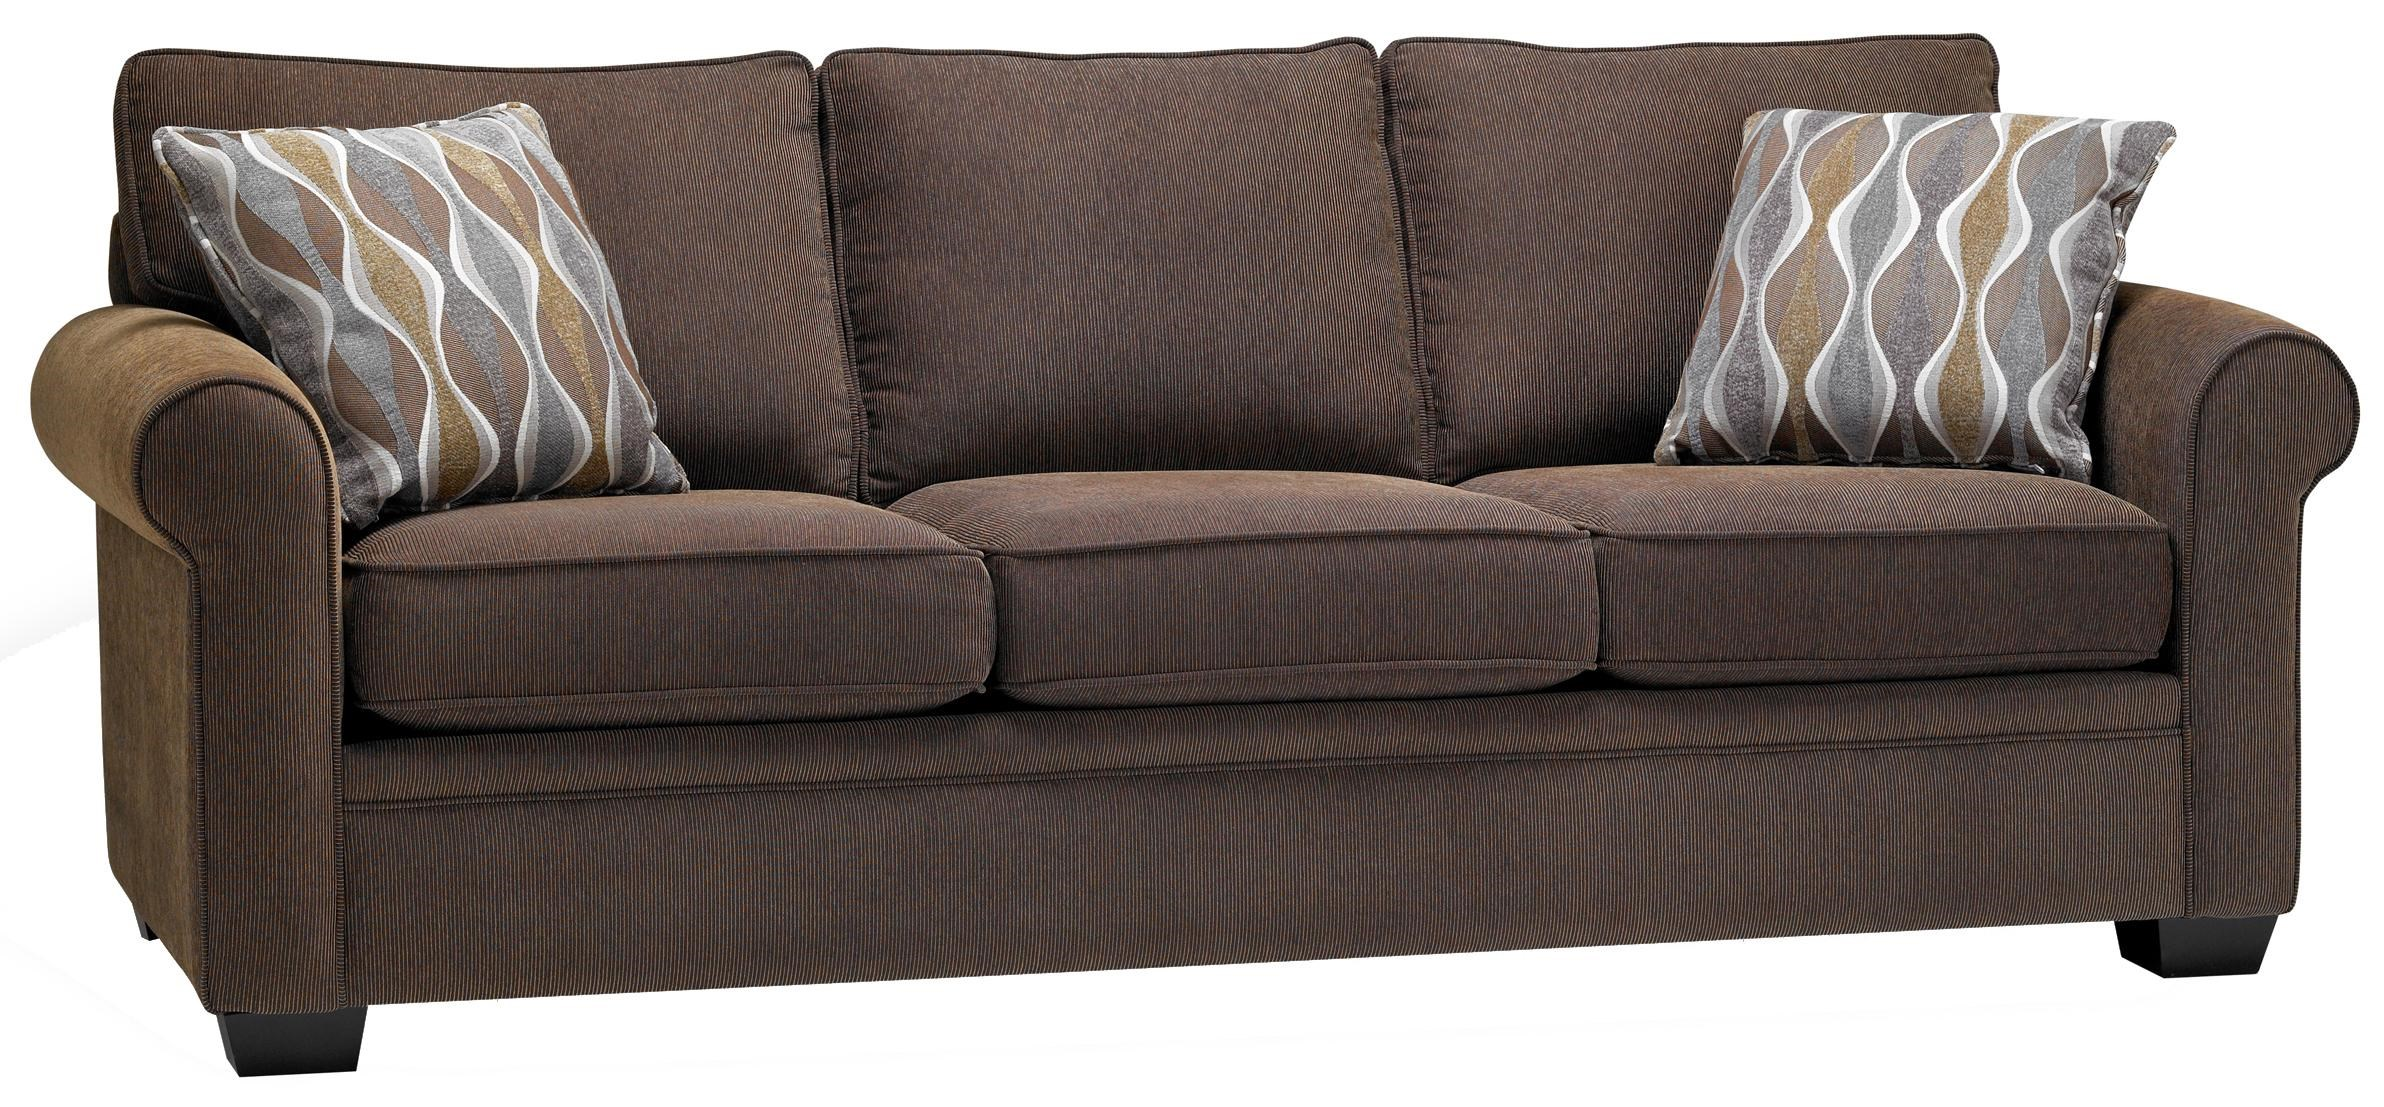 couch sofa with darie leather sectional sofa with left side chaise rh dasschlafzimmer dvrlists com